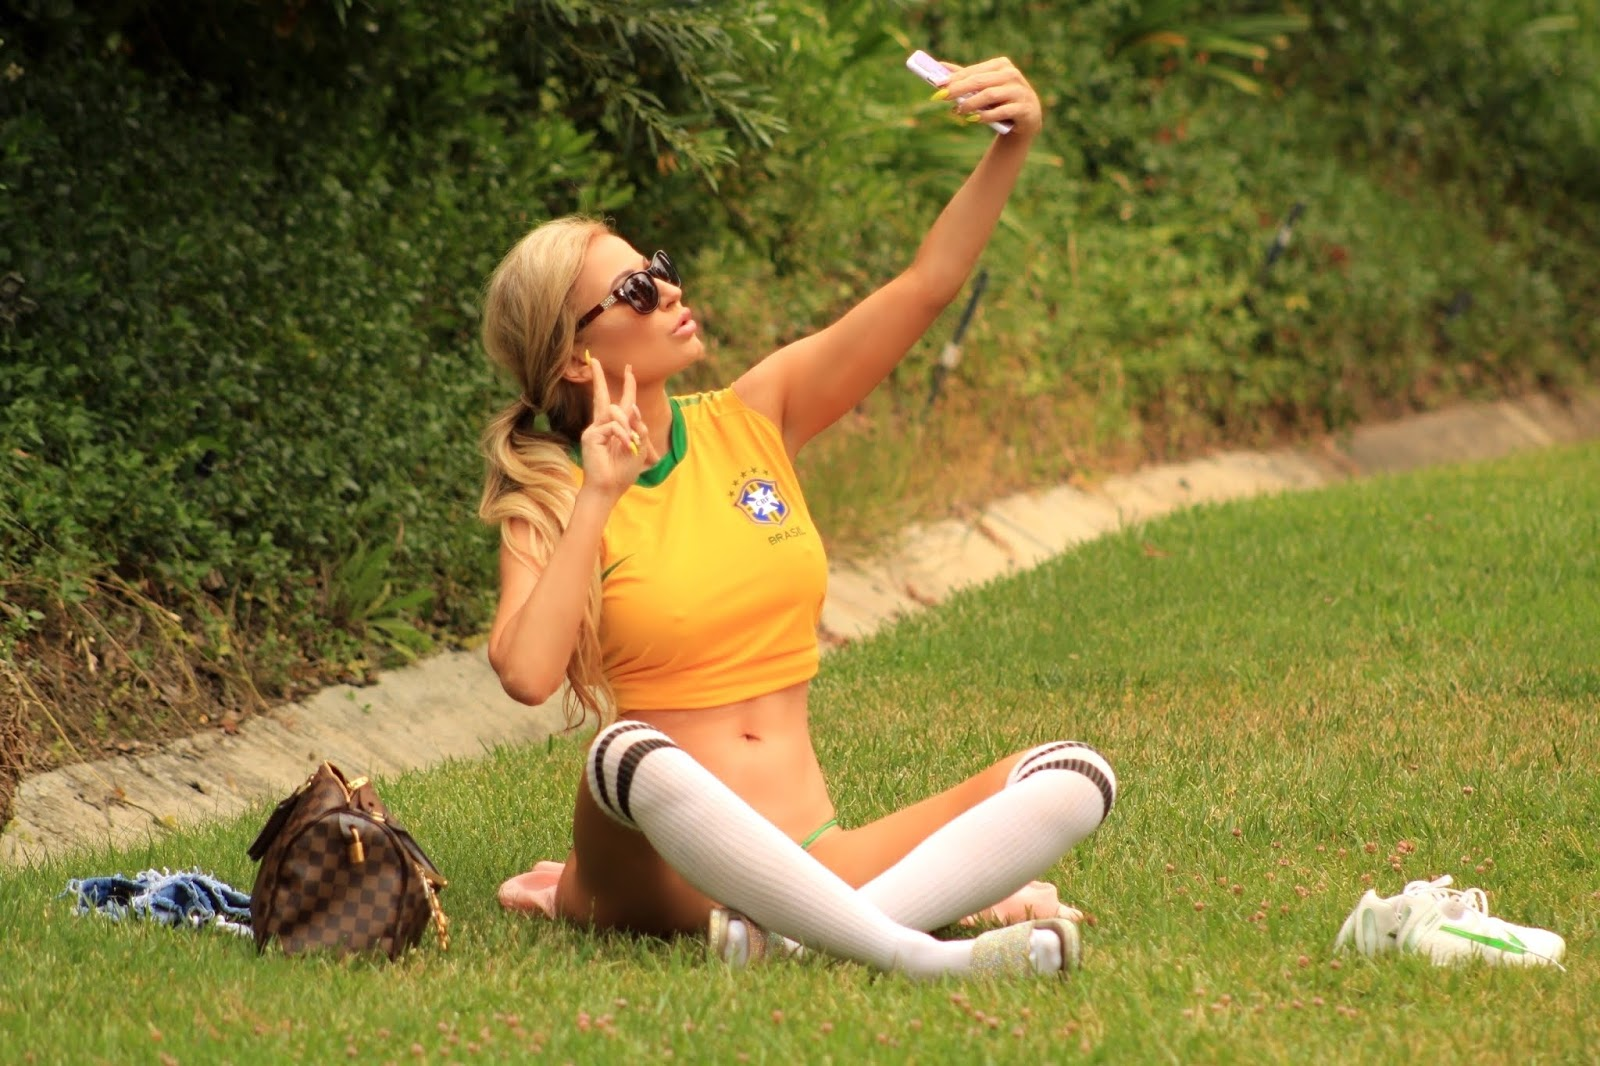 Ana Braga – Shows her support for Brazil in Calabasas